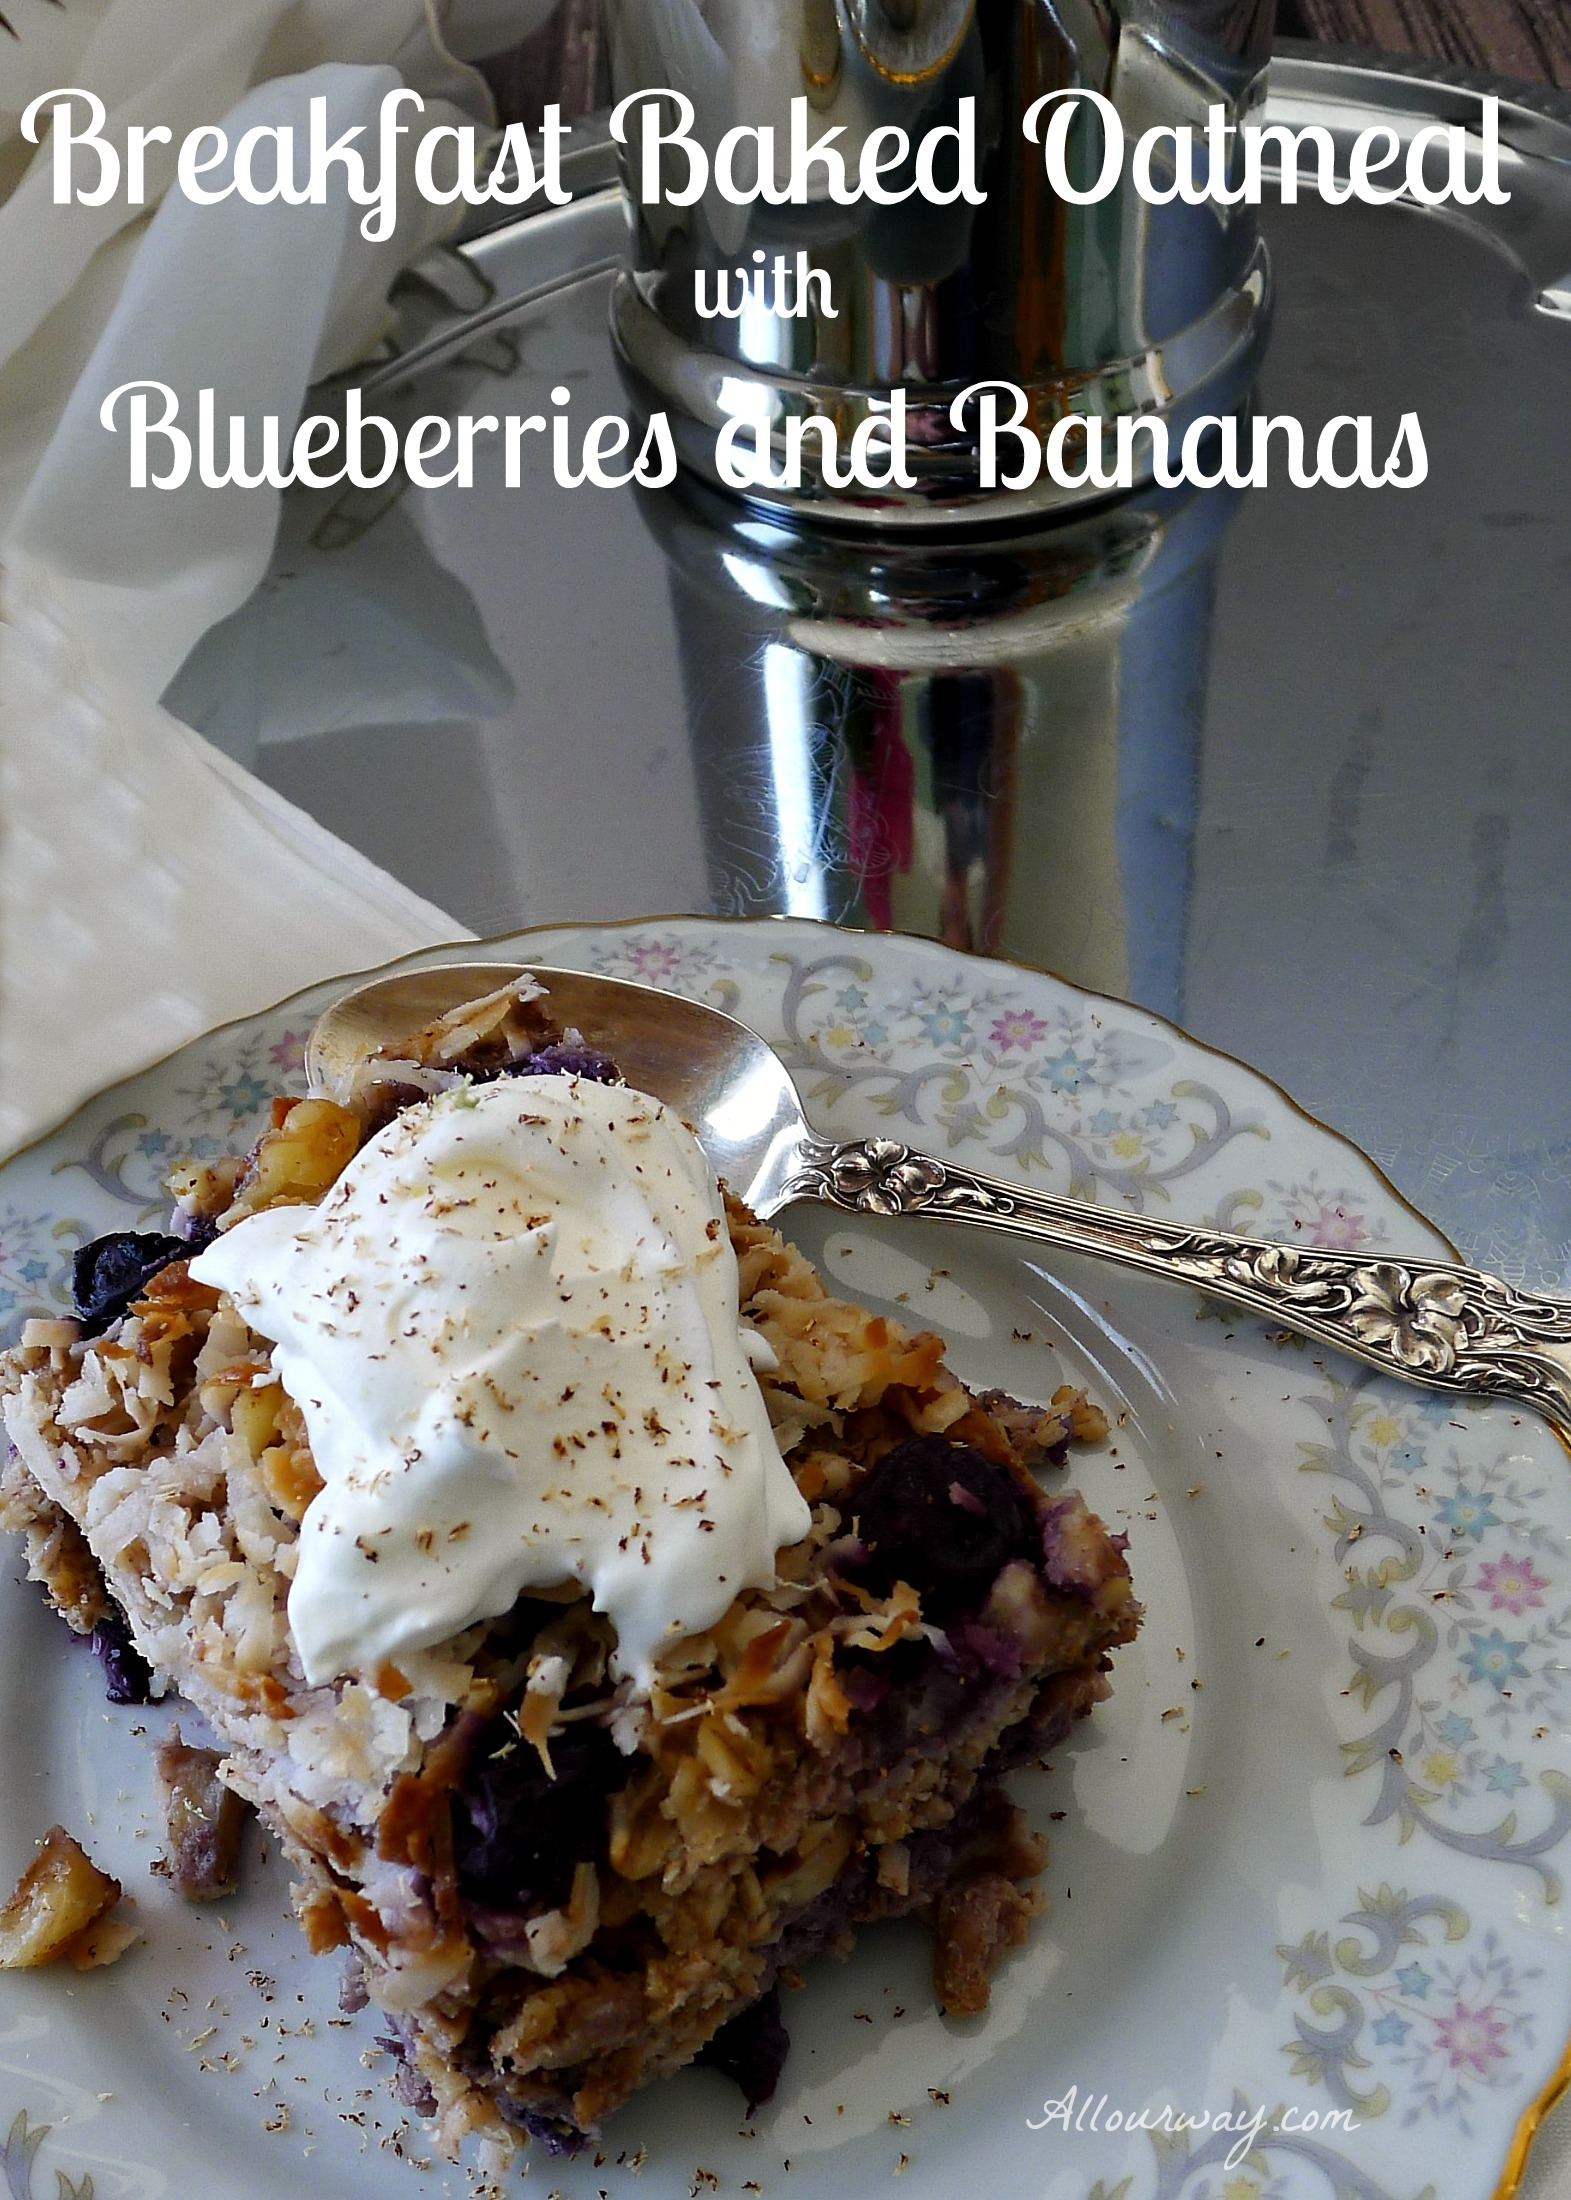 Breakfast Baked Oatmeal with Blueberries and Bananas